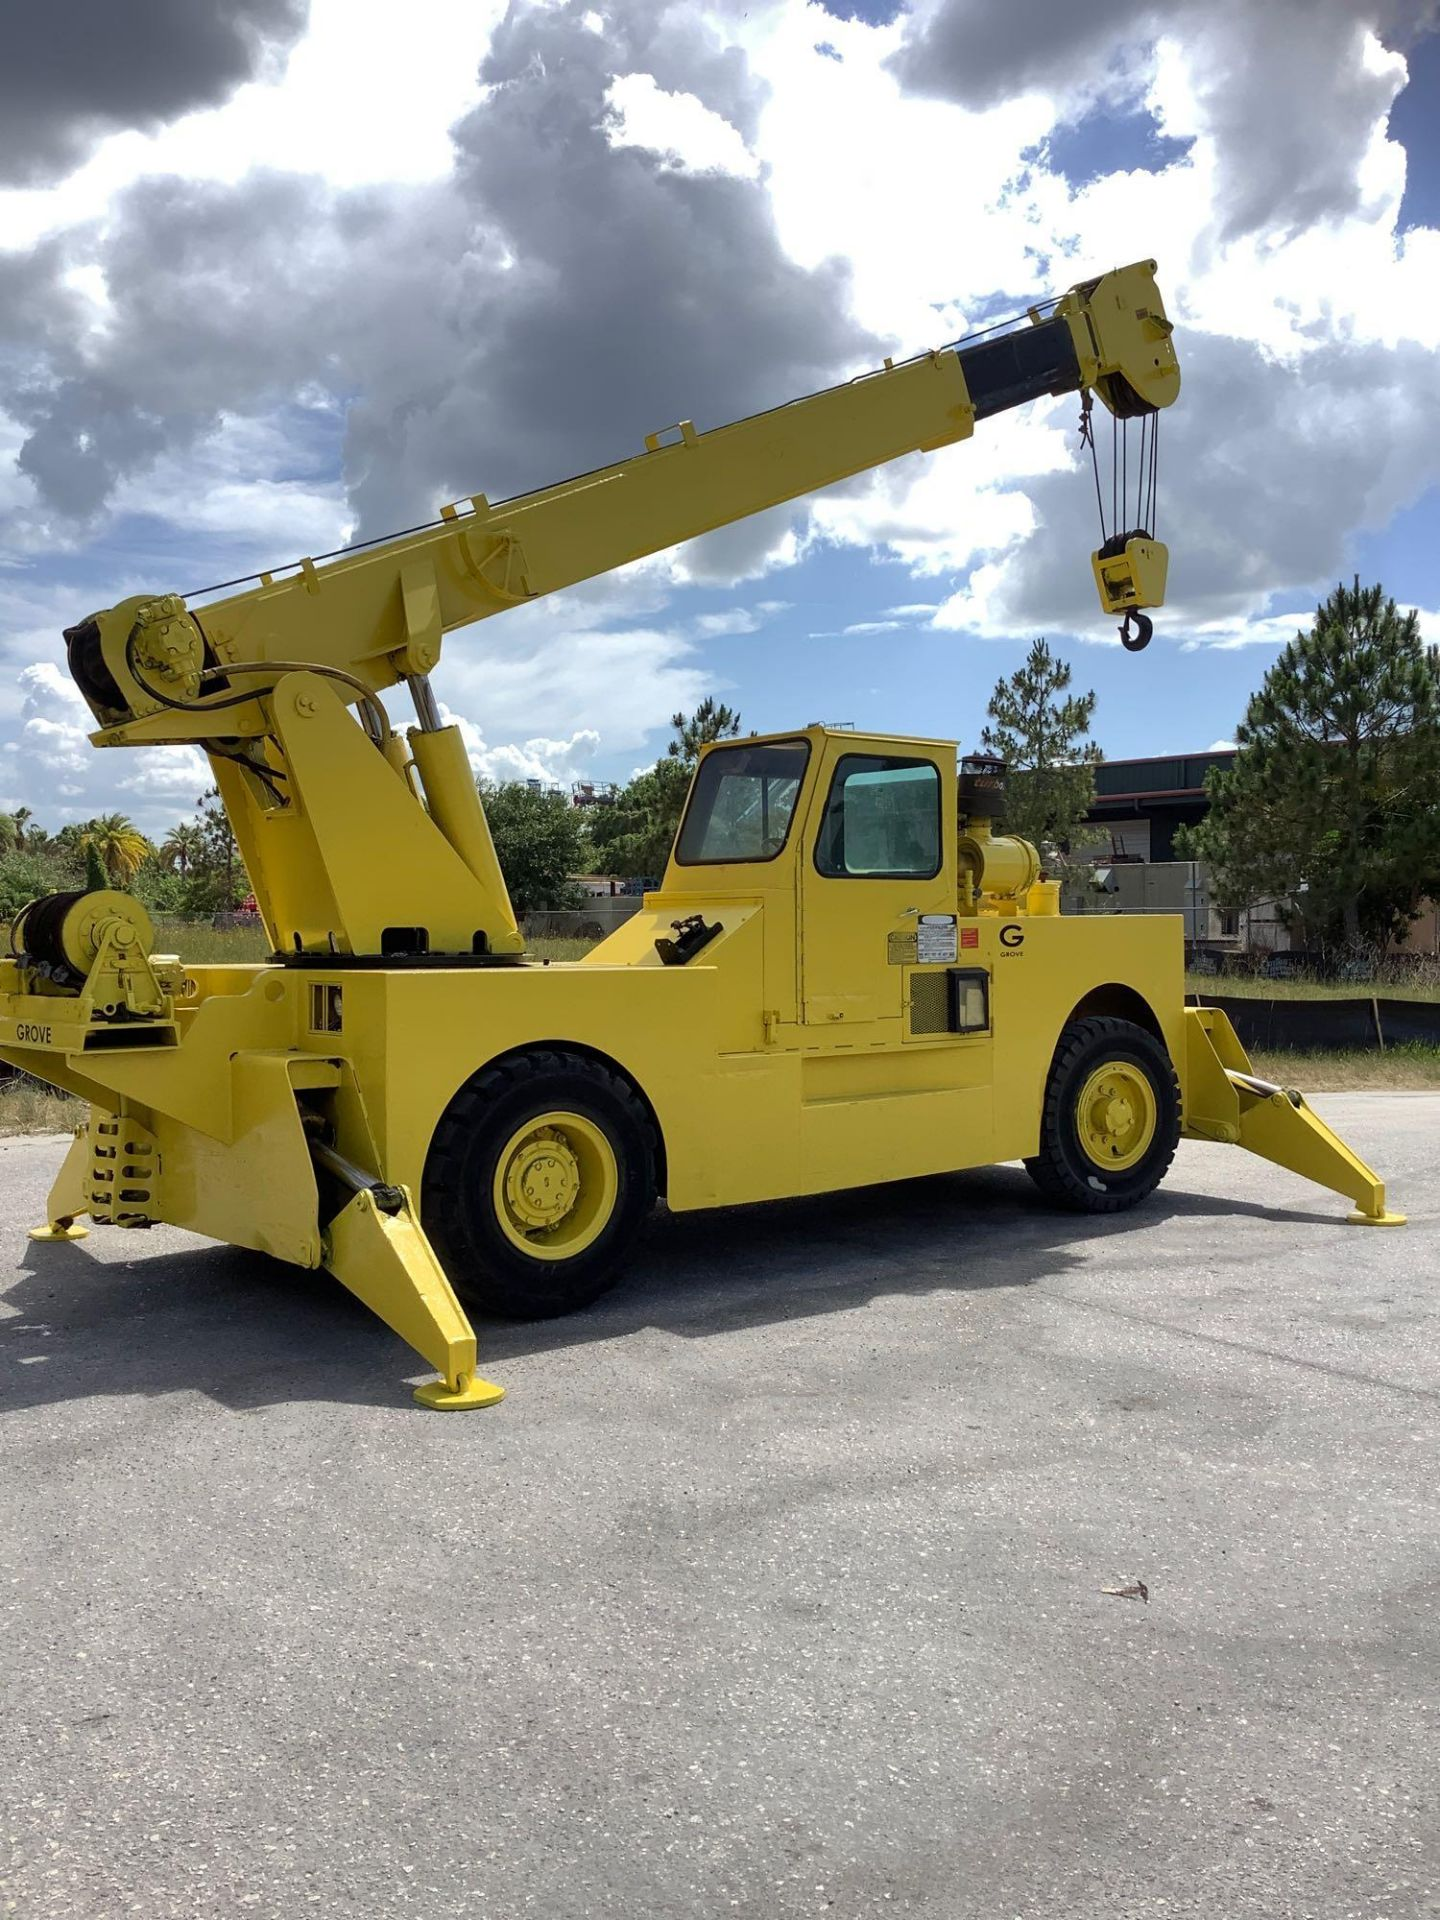 GROVE TRUCK CRANE MODEL IND1012, HYDRAULIC, TELESCOPIC, DIESEL,OUTRIGGER, RUNS AND OPERATES - Image 3 of 18